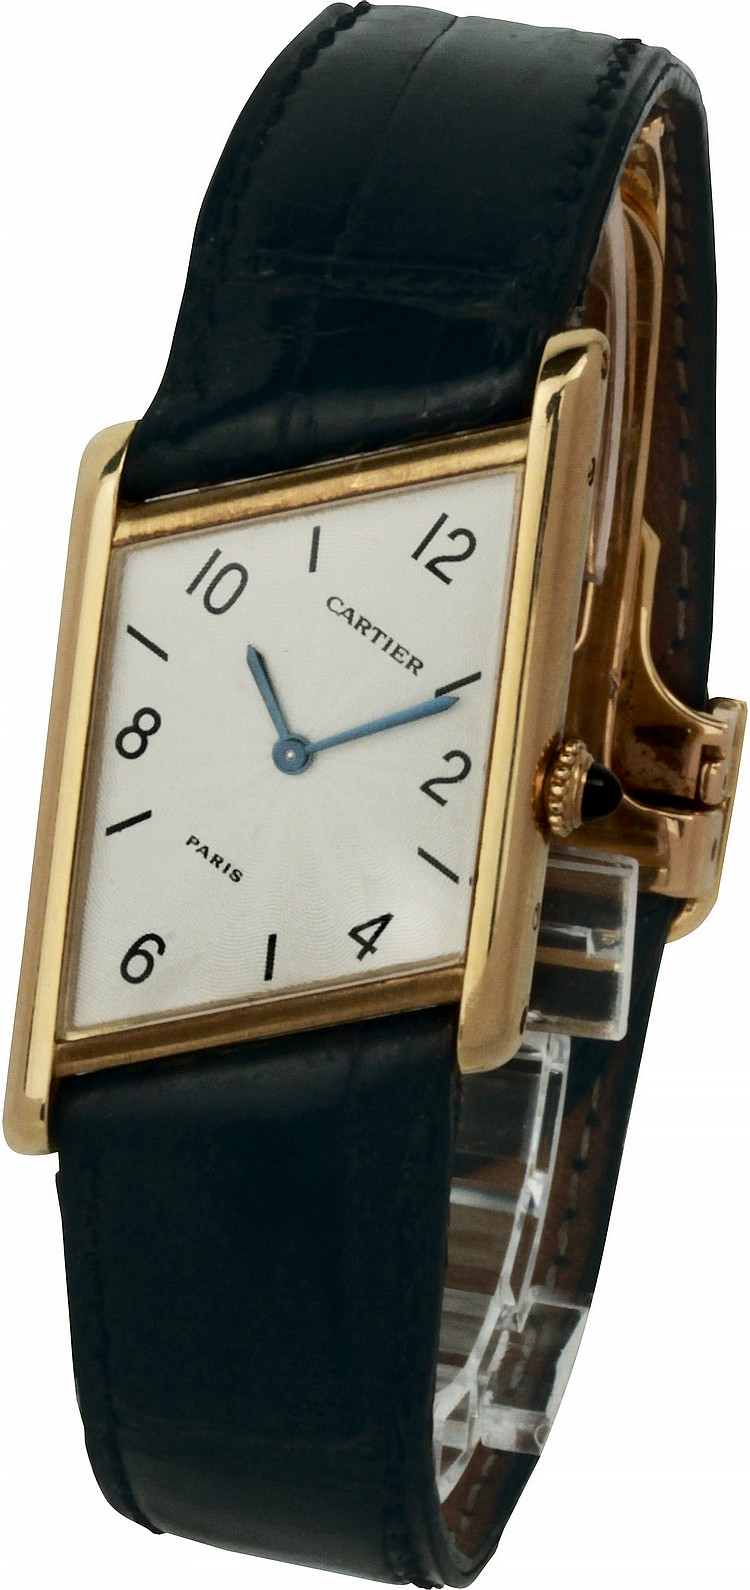 Cartier Paris Tank Asymetrique Limited Edition Deployante 1996, limited edition n. 149 of 300 watches